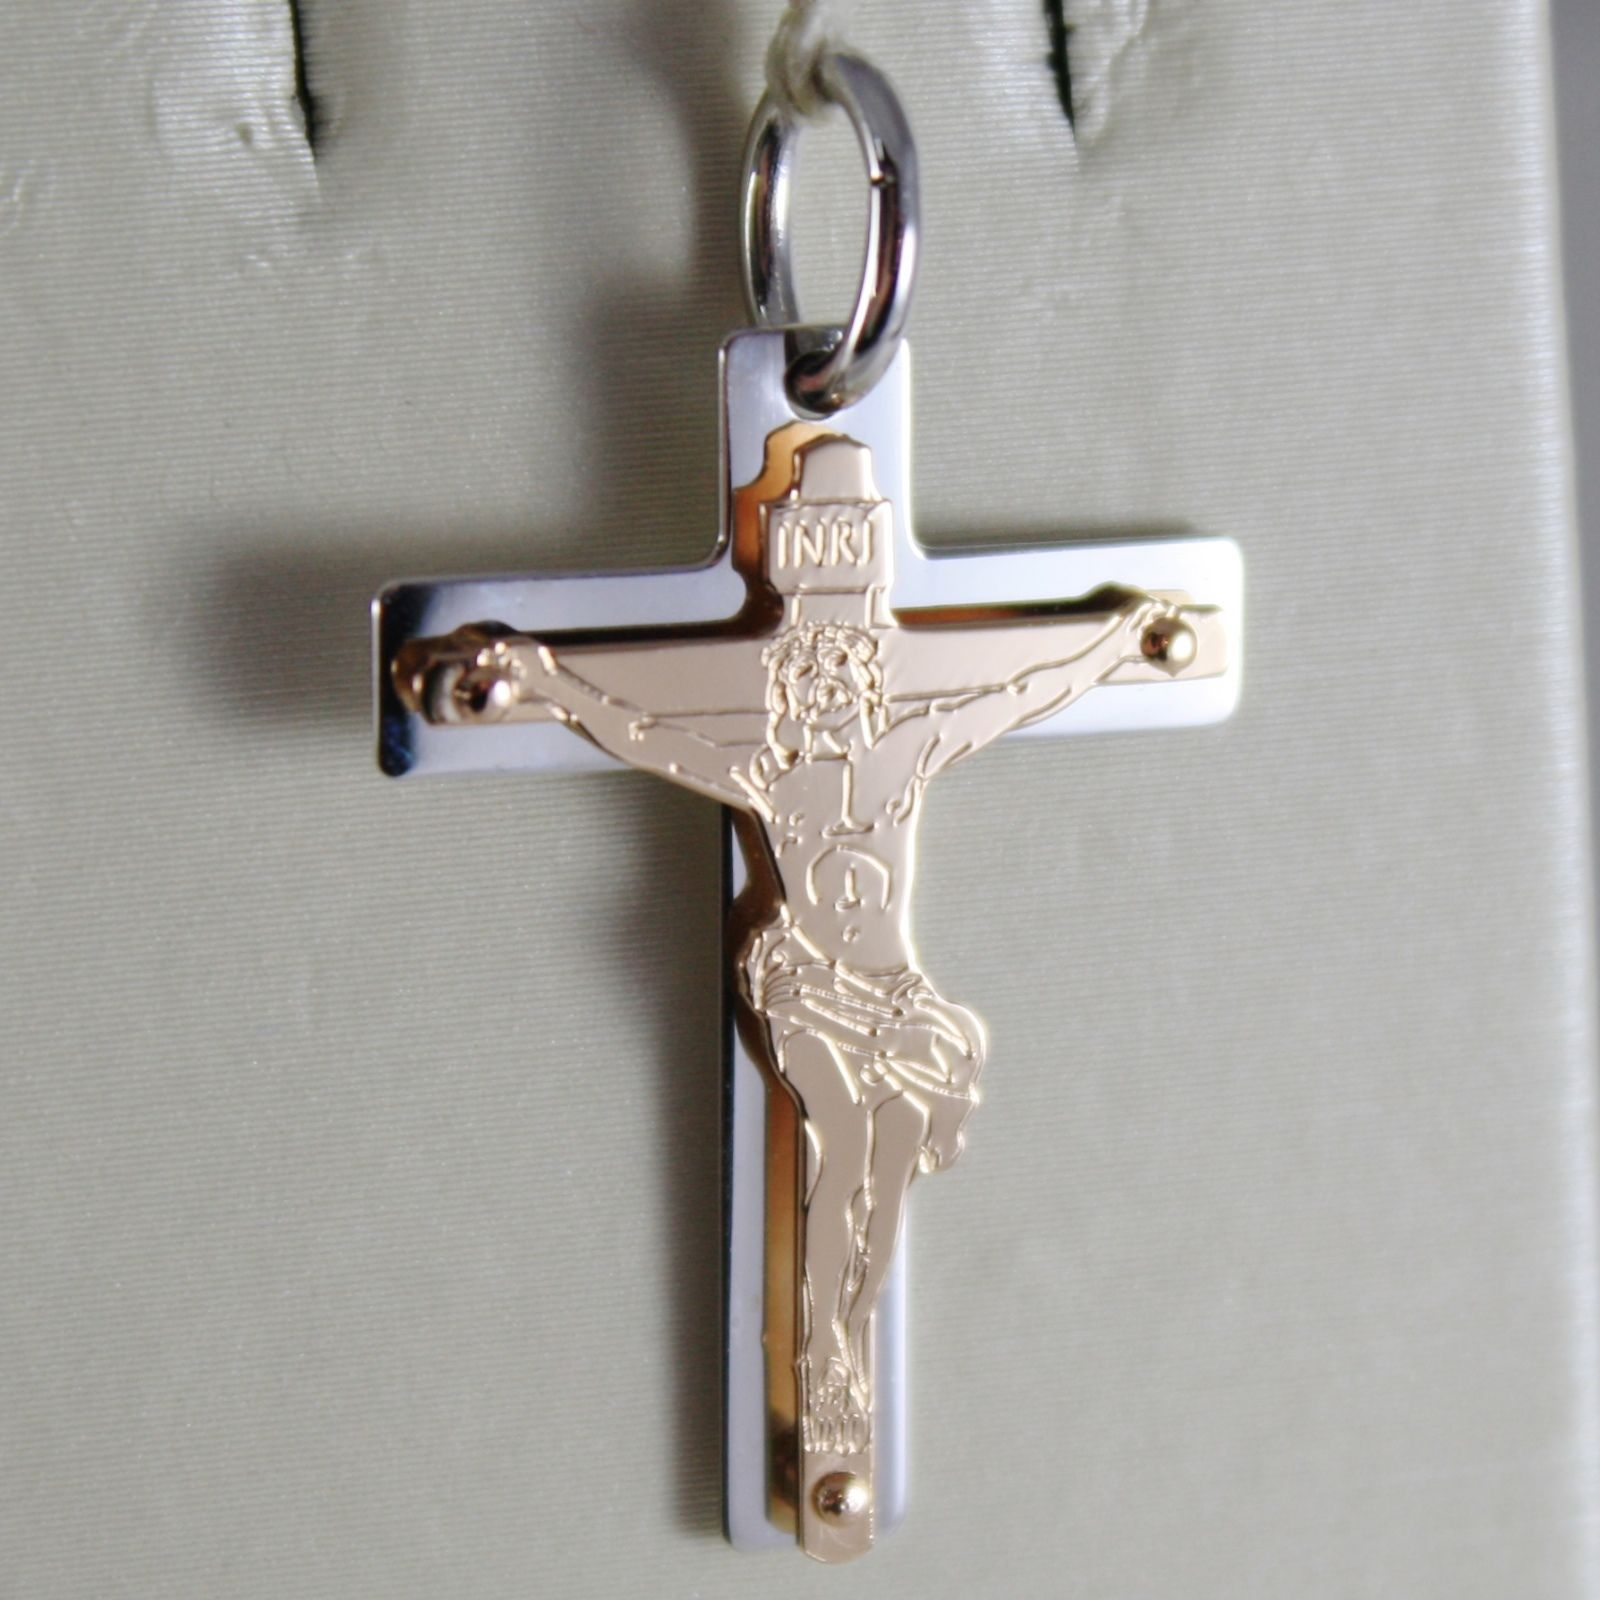 18K ROSE WHITE GOLD CROSS WITH JESUS, SHINY BRIGHT 1.14 INCHES, MADE IN ITALY